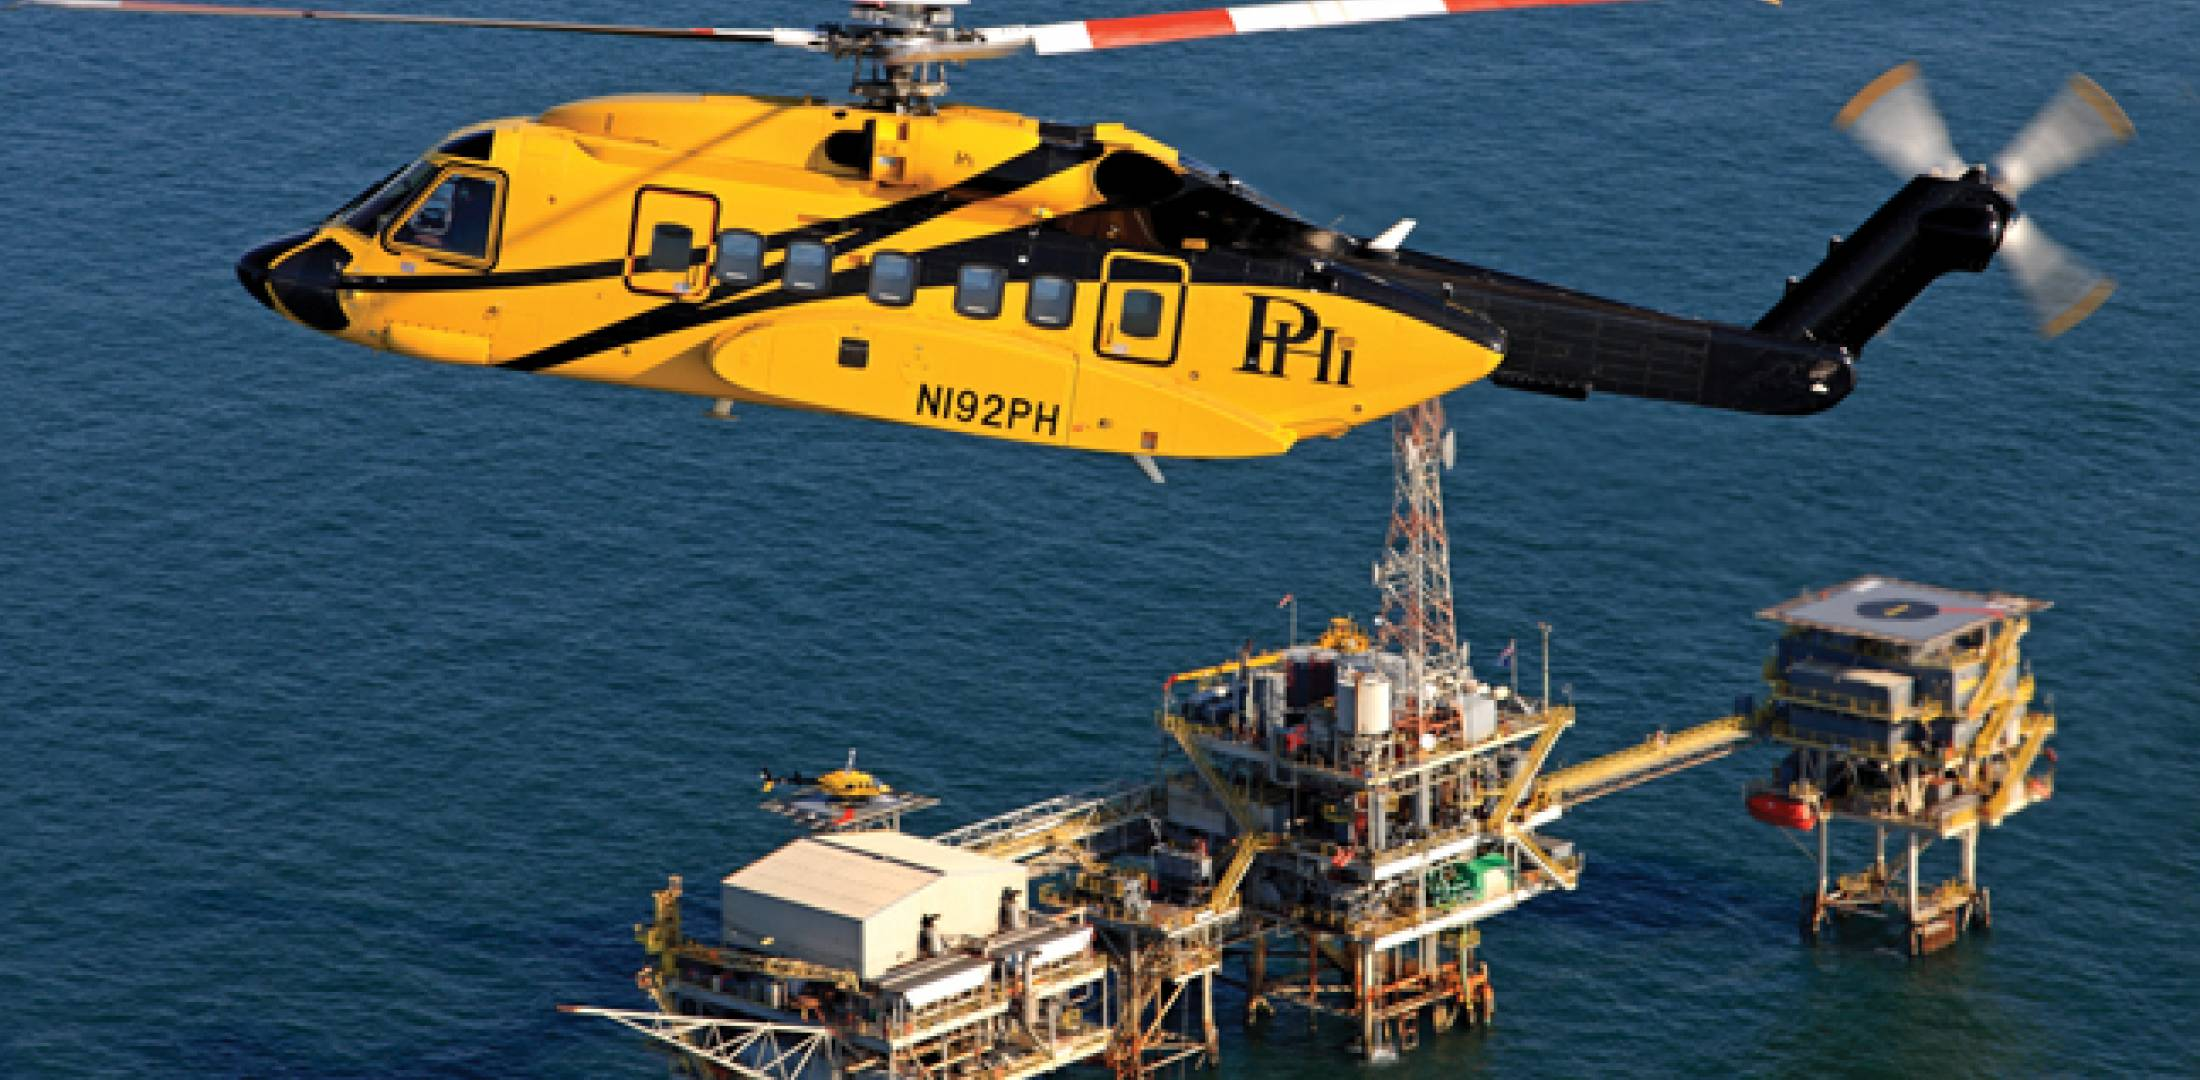 Offshore operator PHI worked with Sikorsky to design an automated rig approach for the S-92 to reduce pilot workload by eliminating manual flying in the intermediate stages of the approach.